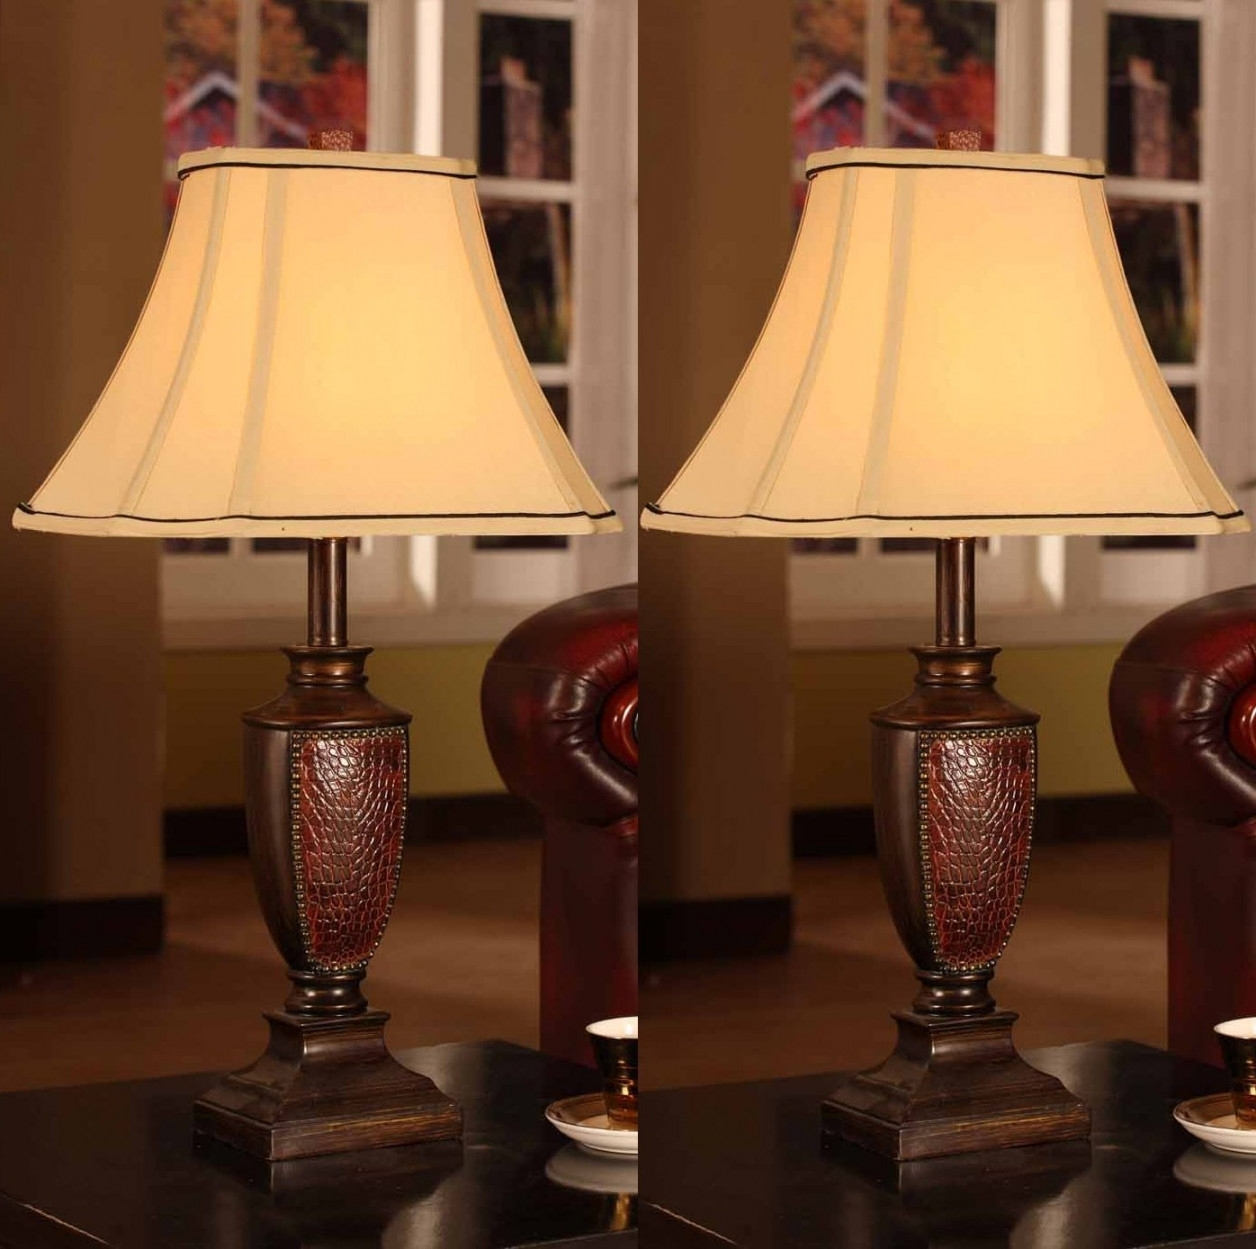 Battery Operated Living Room Table Lamps Regarding Well Known Battery Operated Living Room Table Lamps (View 5 of 15)